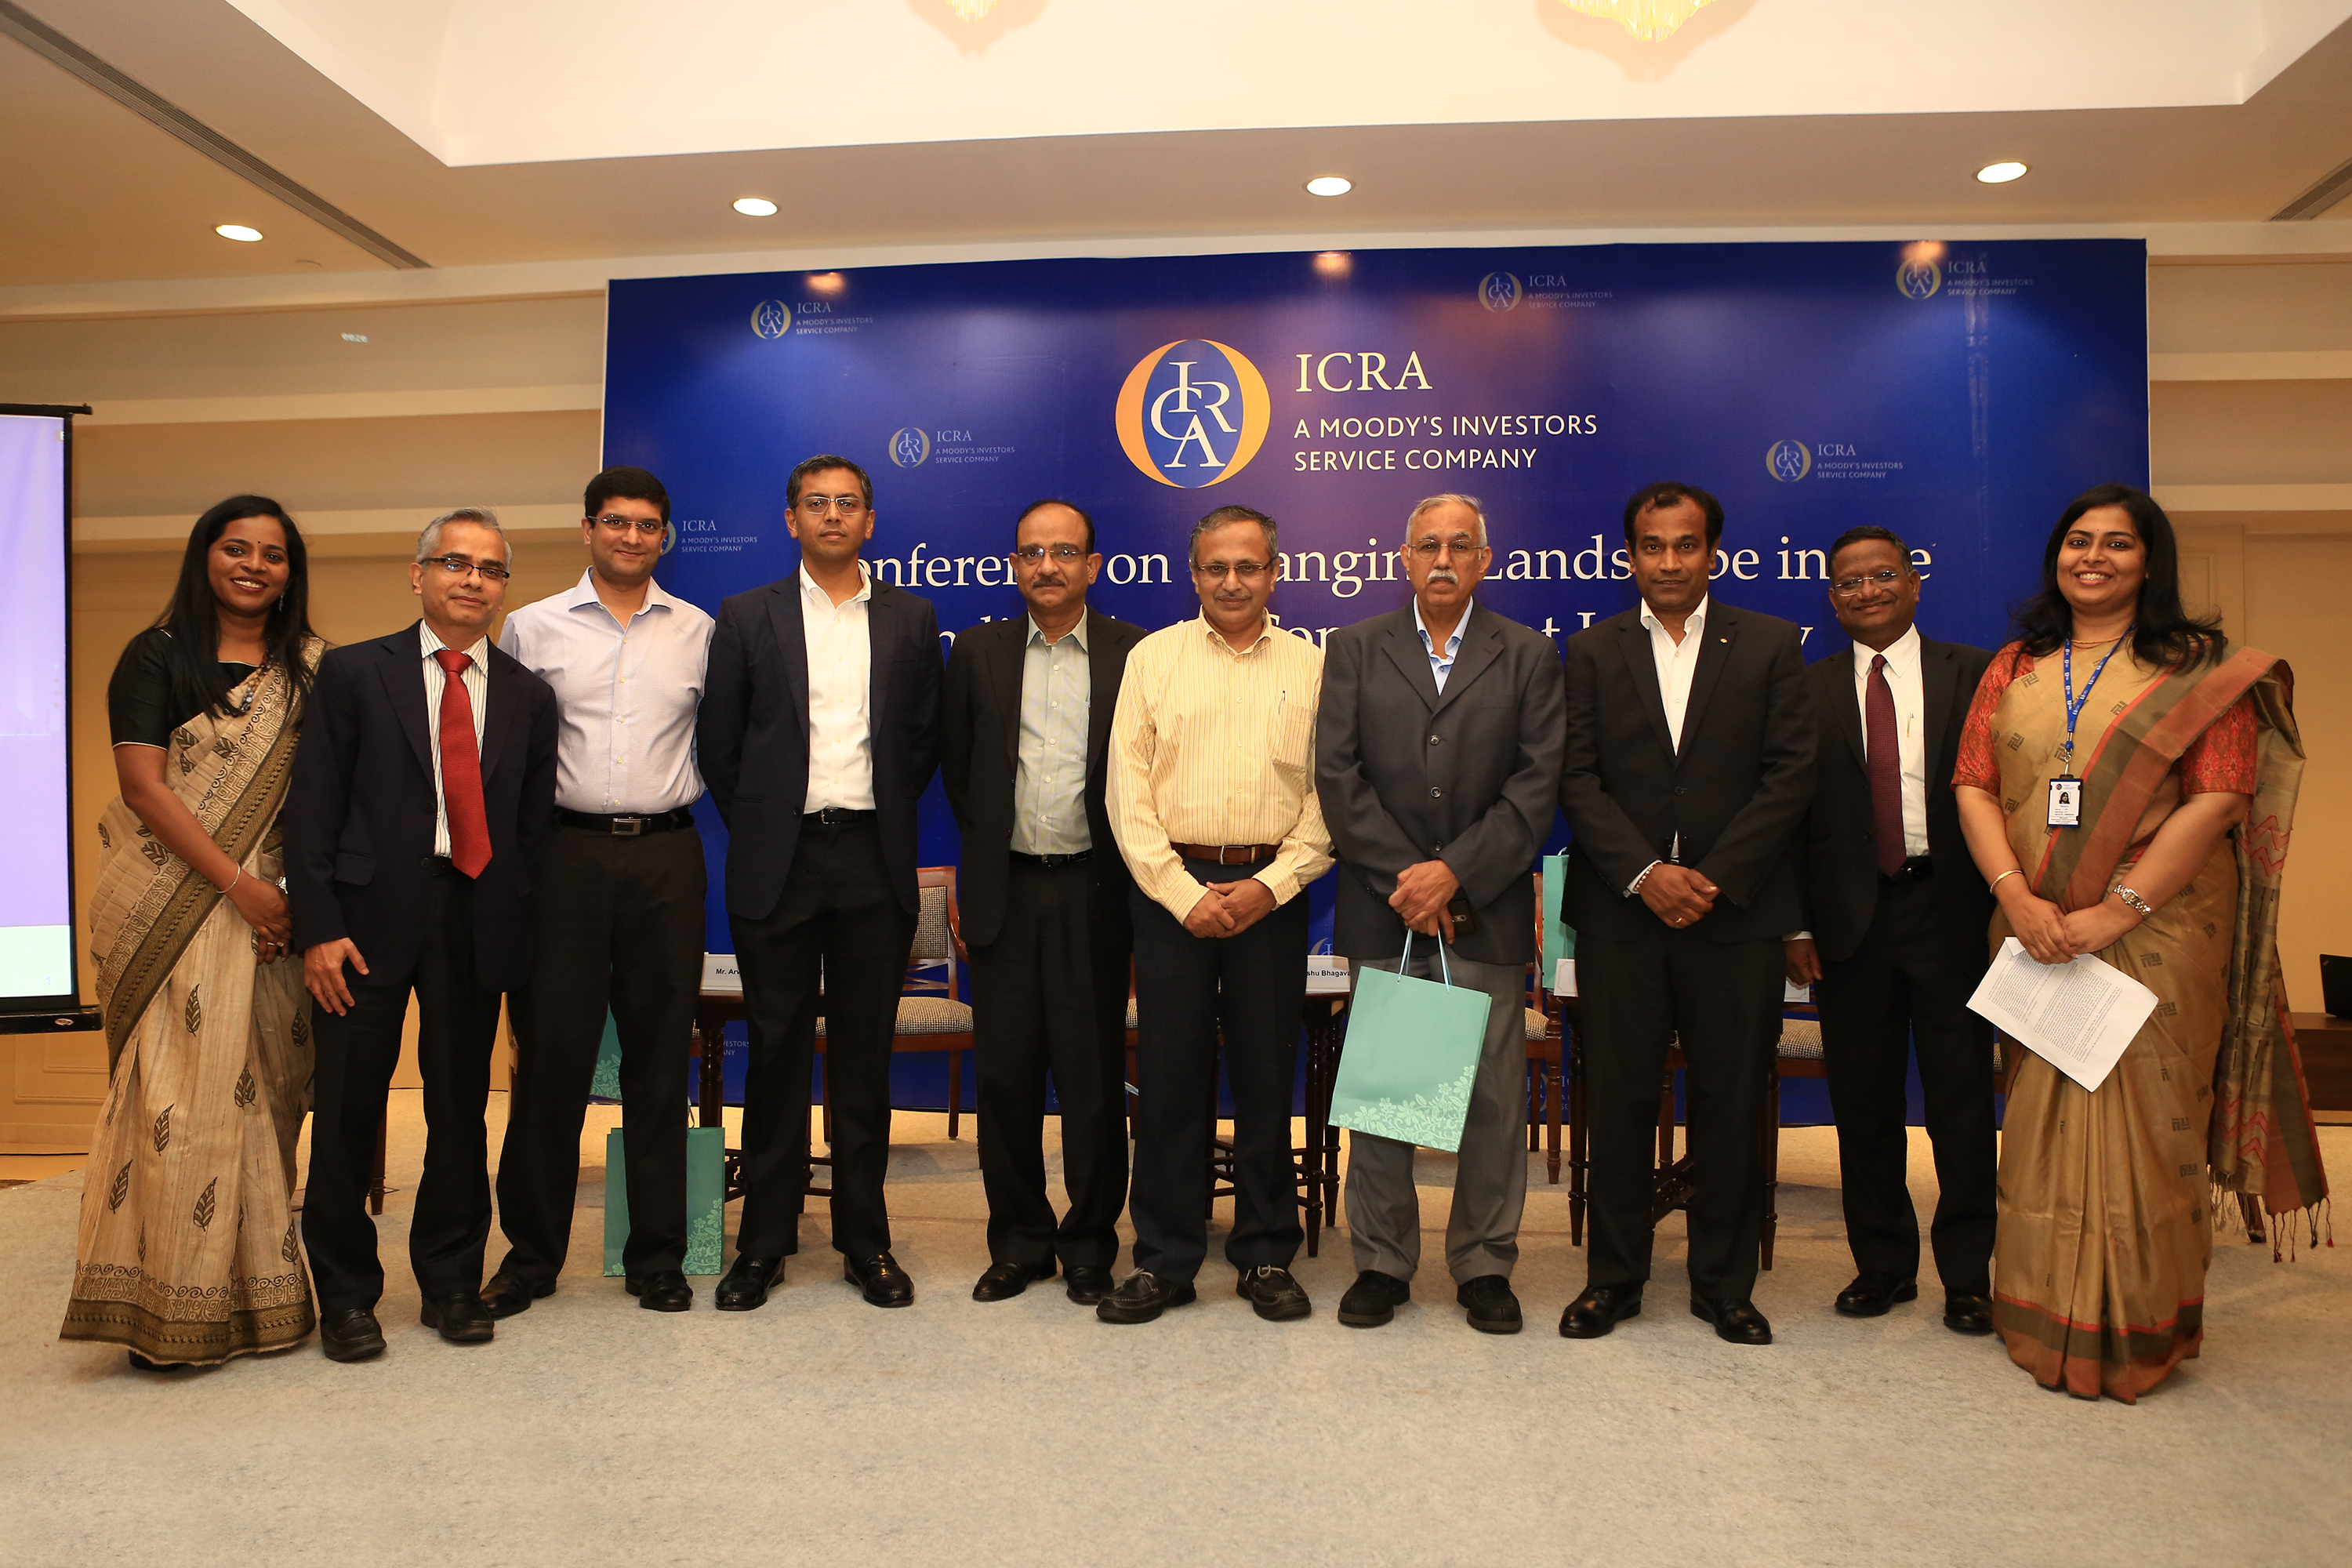 ICRA speakers along with panellists during the conference on Indian Auto Component Industry at Taj Connemara